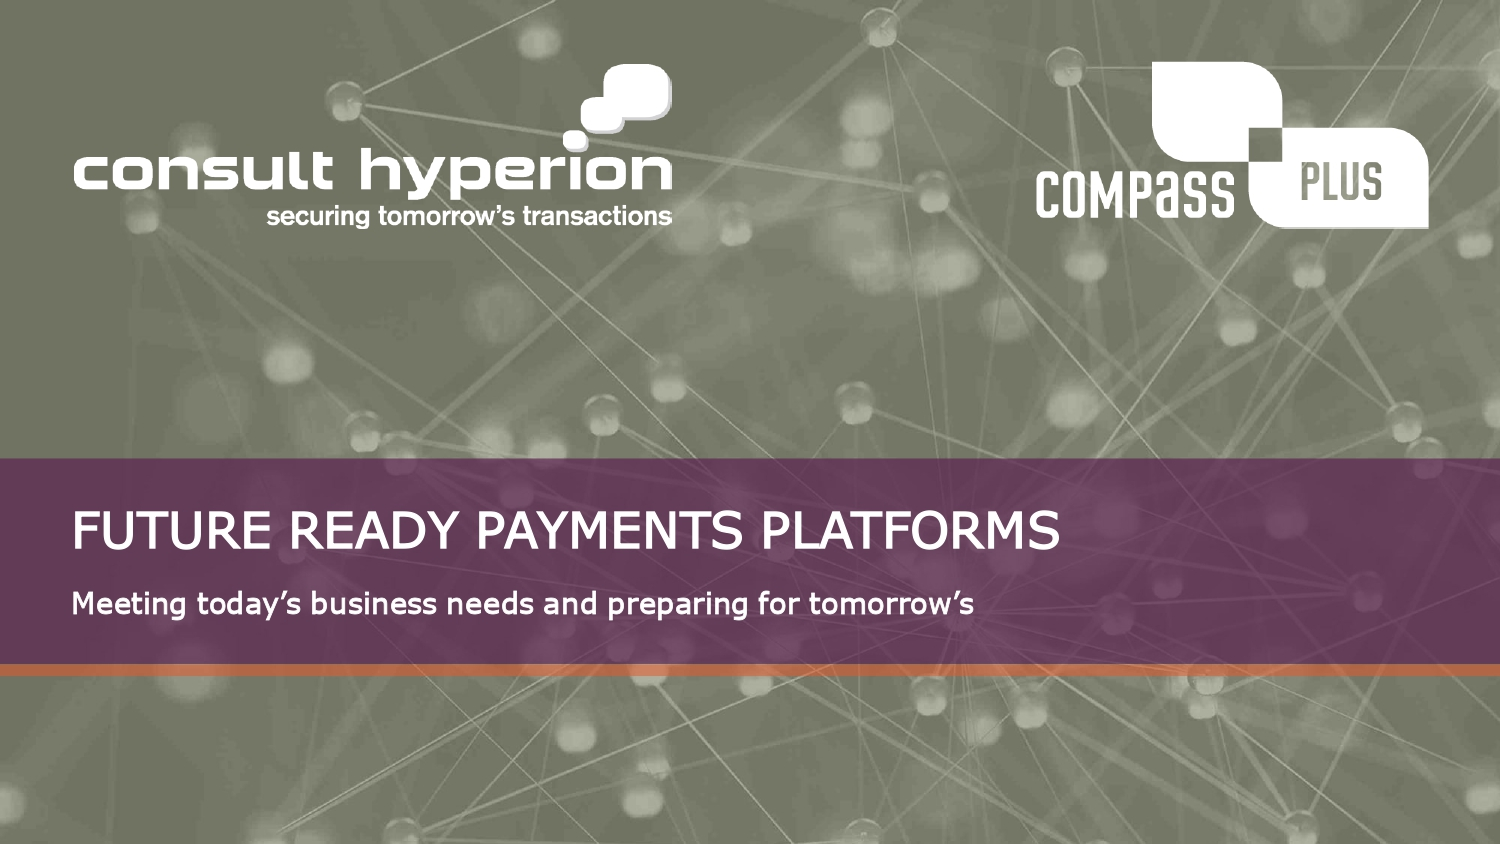 Compass Plus and Consult Hyperion Team Up to Delve Into Future Ready Payments Platforms